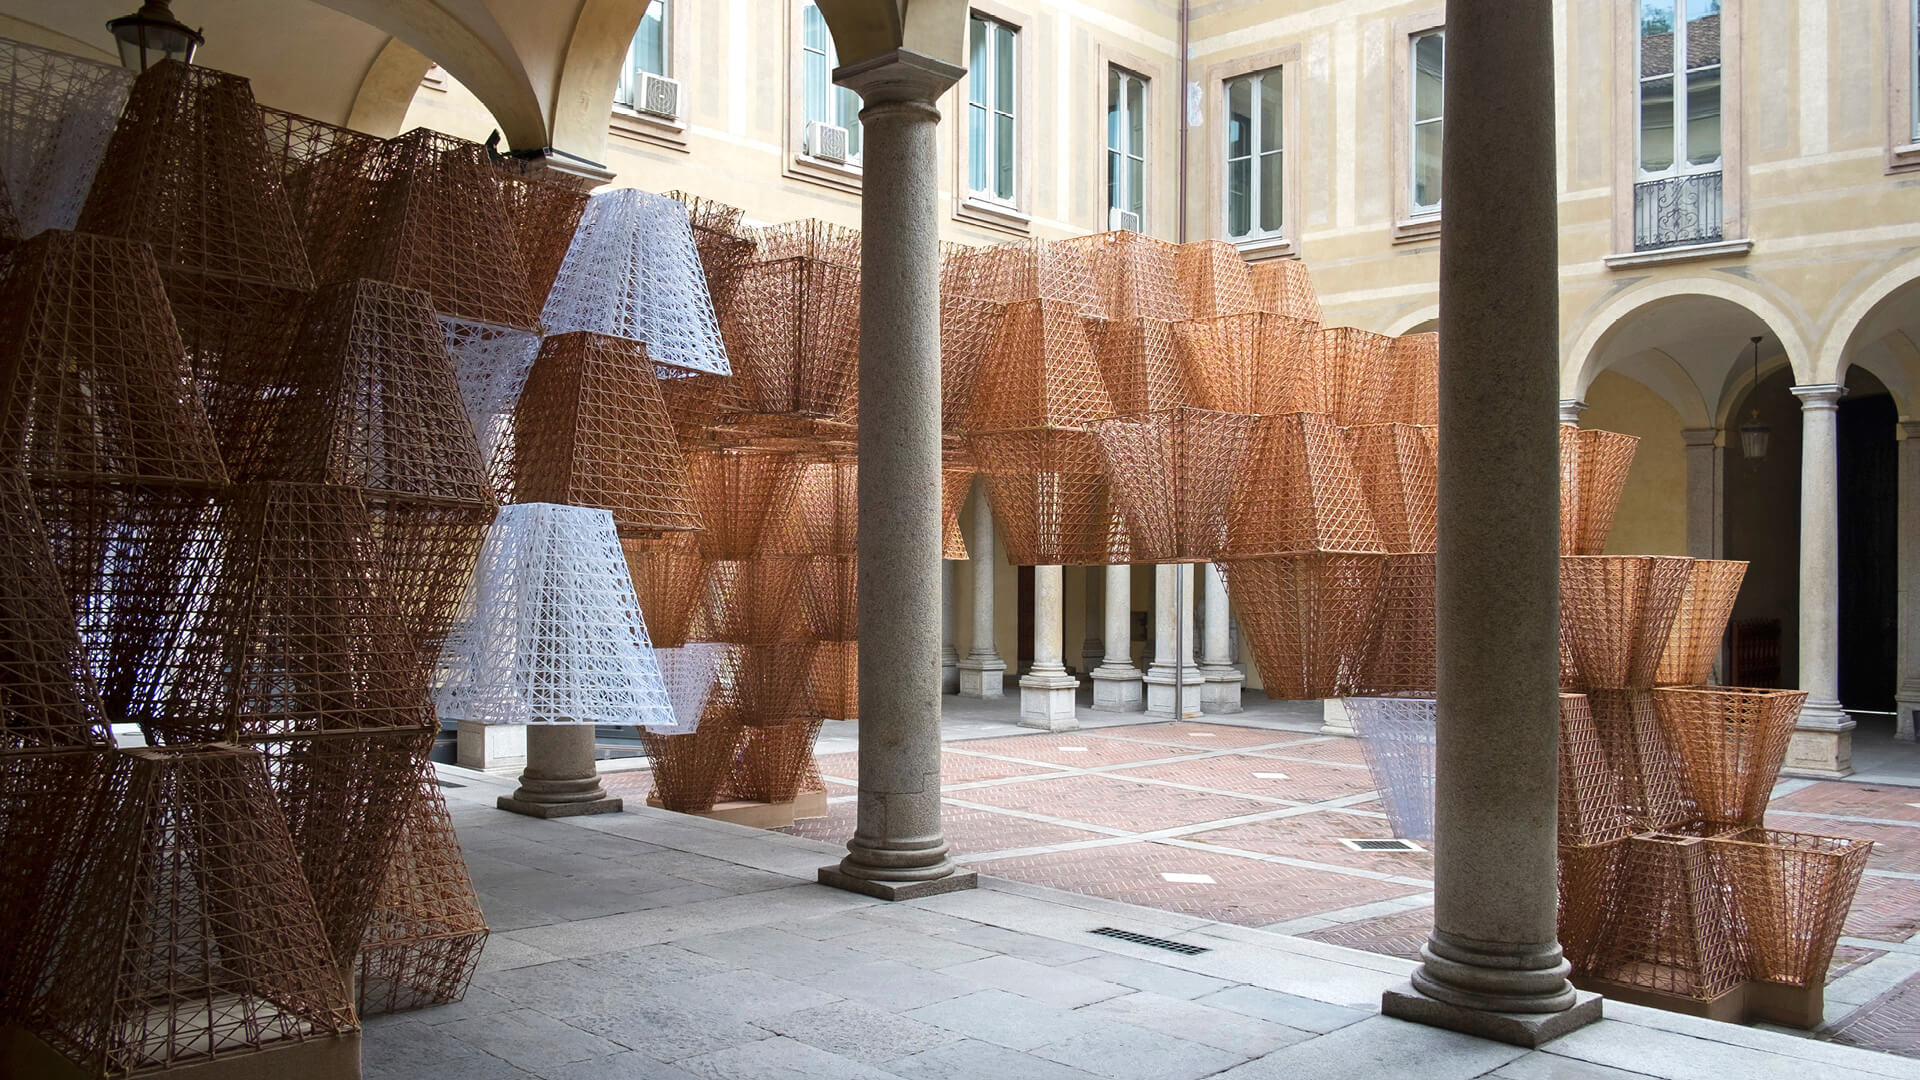 'Conifera' - a 3D printed bioplastic installation designed by Mamou-Mani Ltd in collaboration with COS for the Milan Design Week 2019 | Cross Border Conversations | STIR X LOCO Design | STIRworld